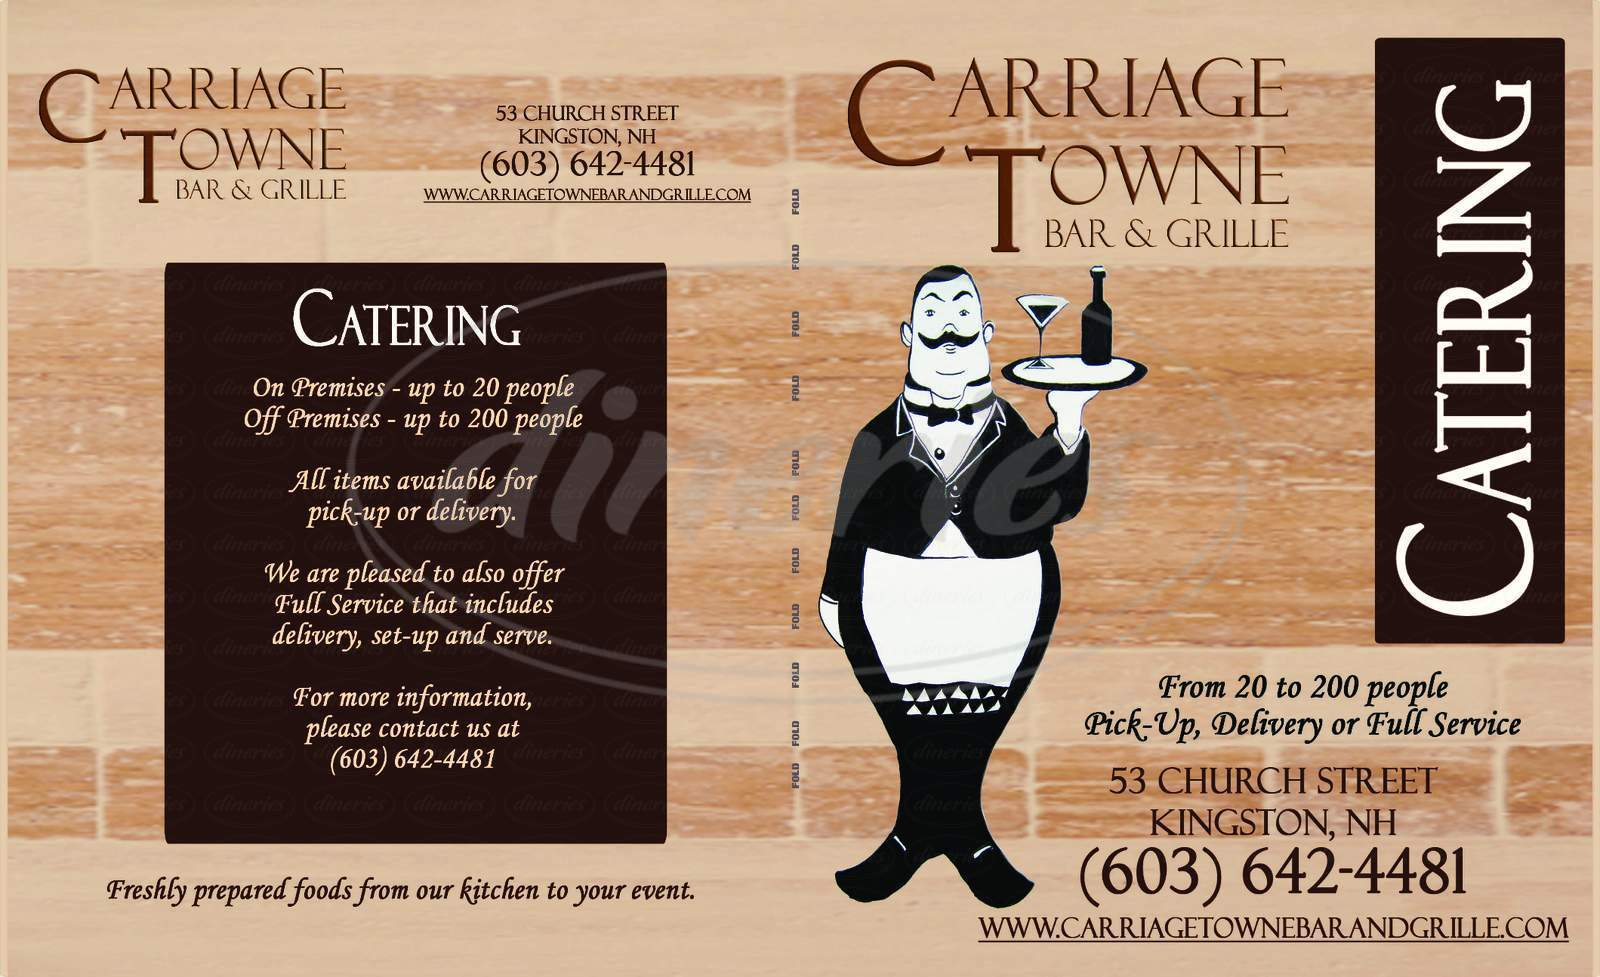 menu for Carriage Towne Bar and Grill